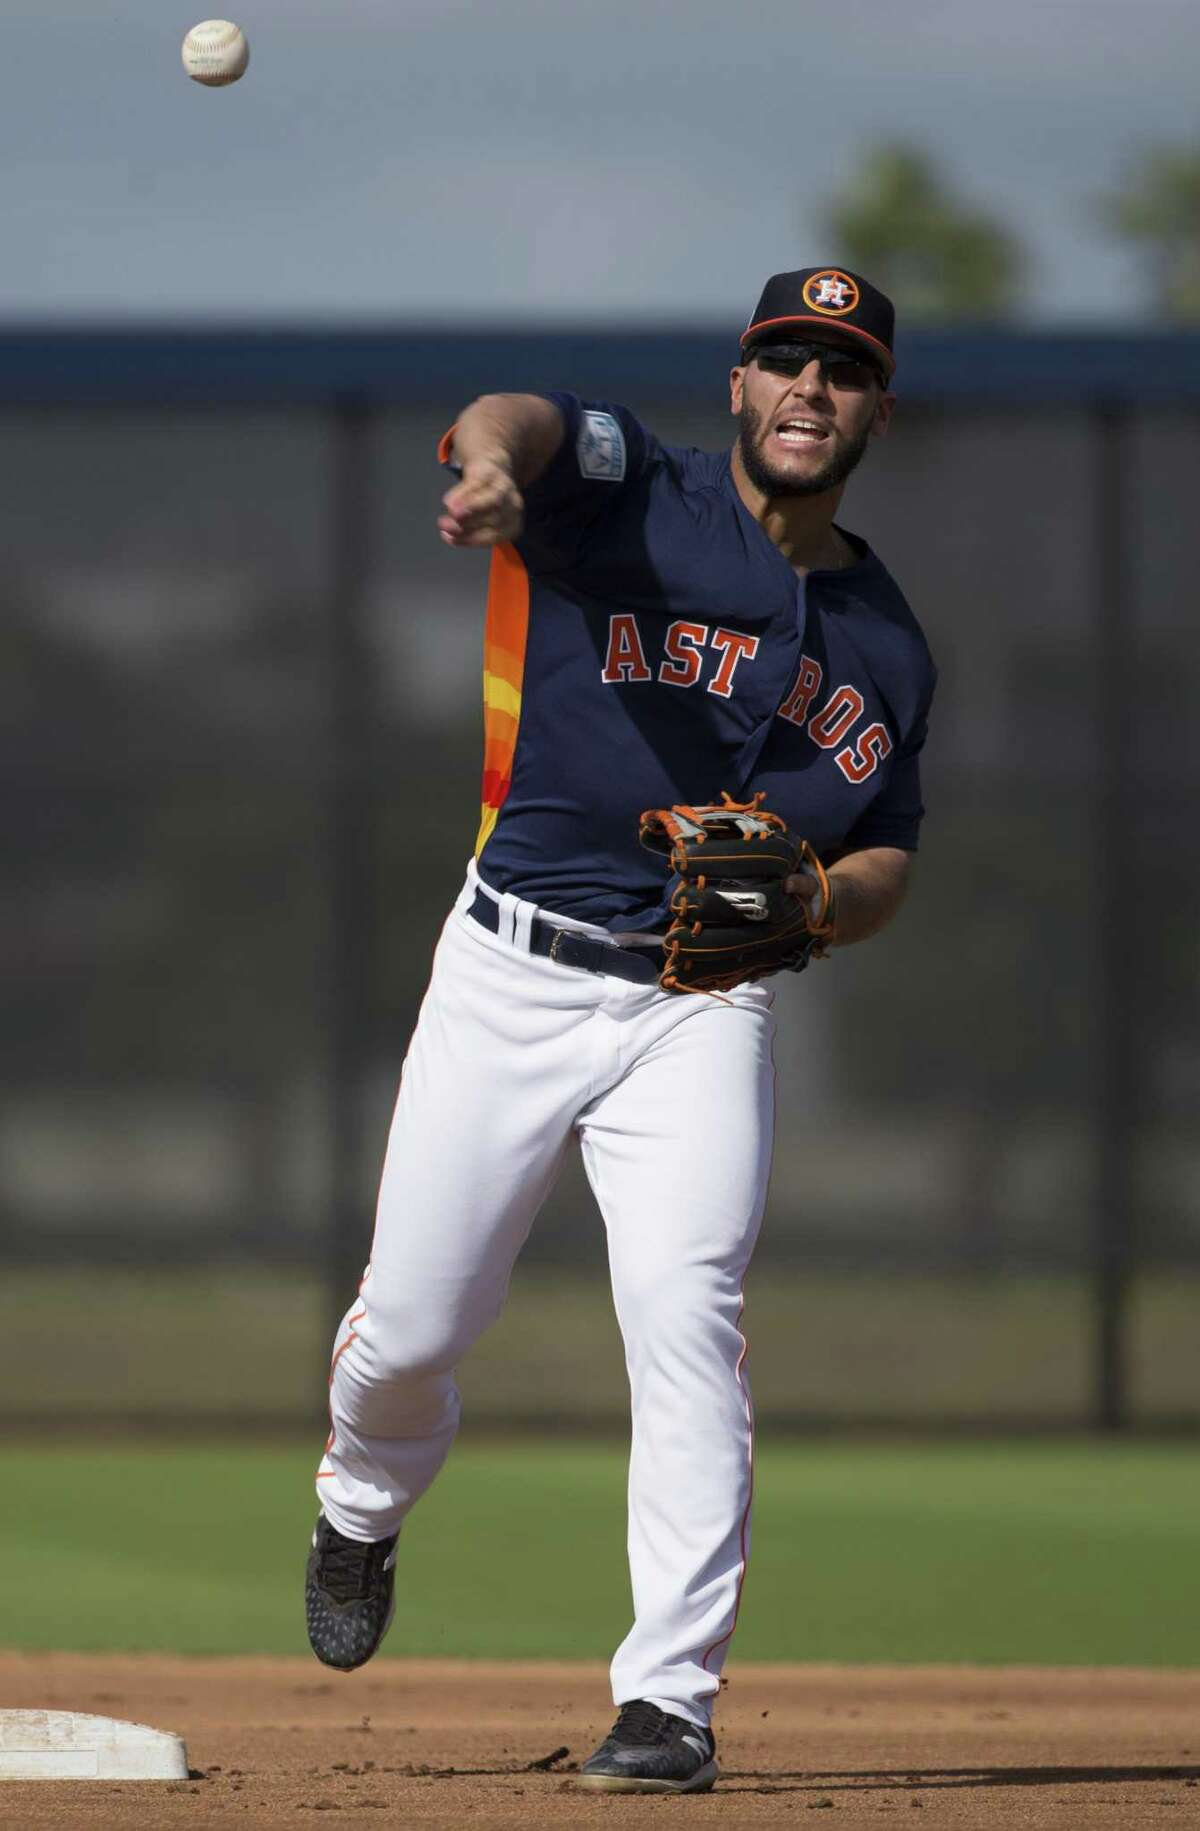 Astros infielder Abraham Toro had five hits in his first 13 Grapefruit League plate appearances.